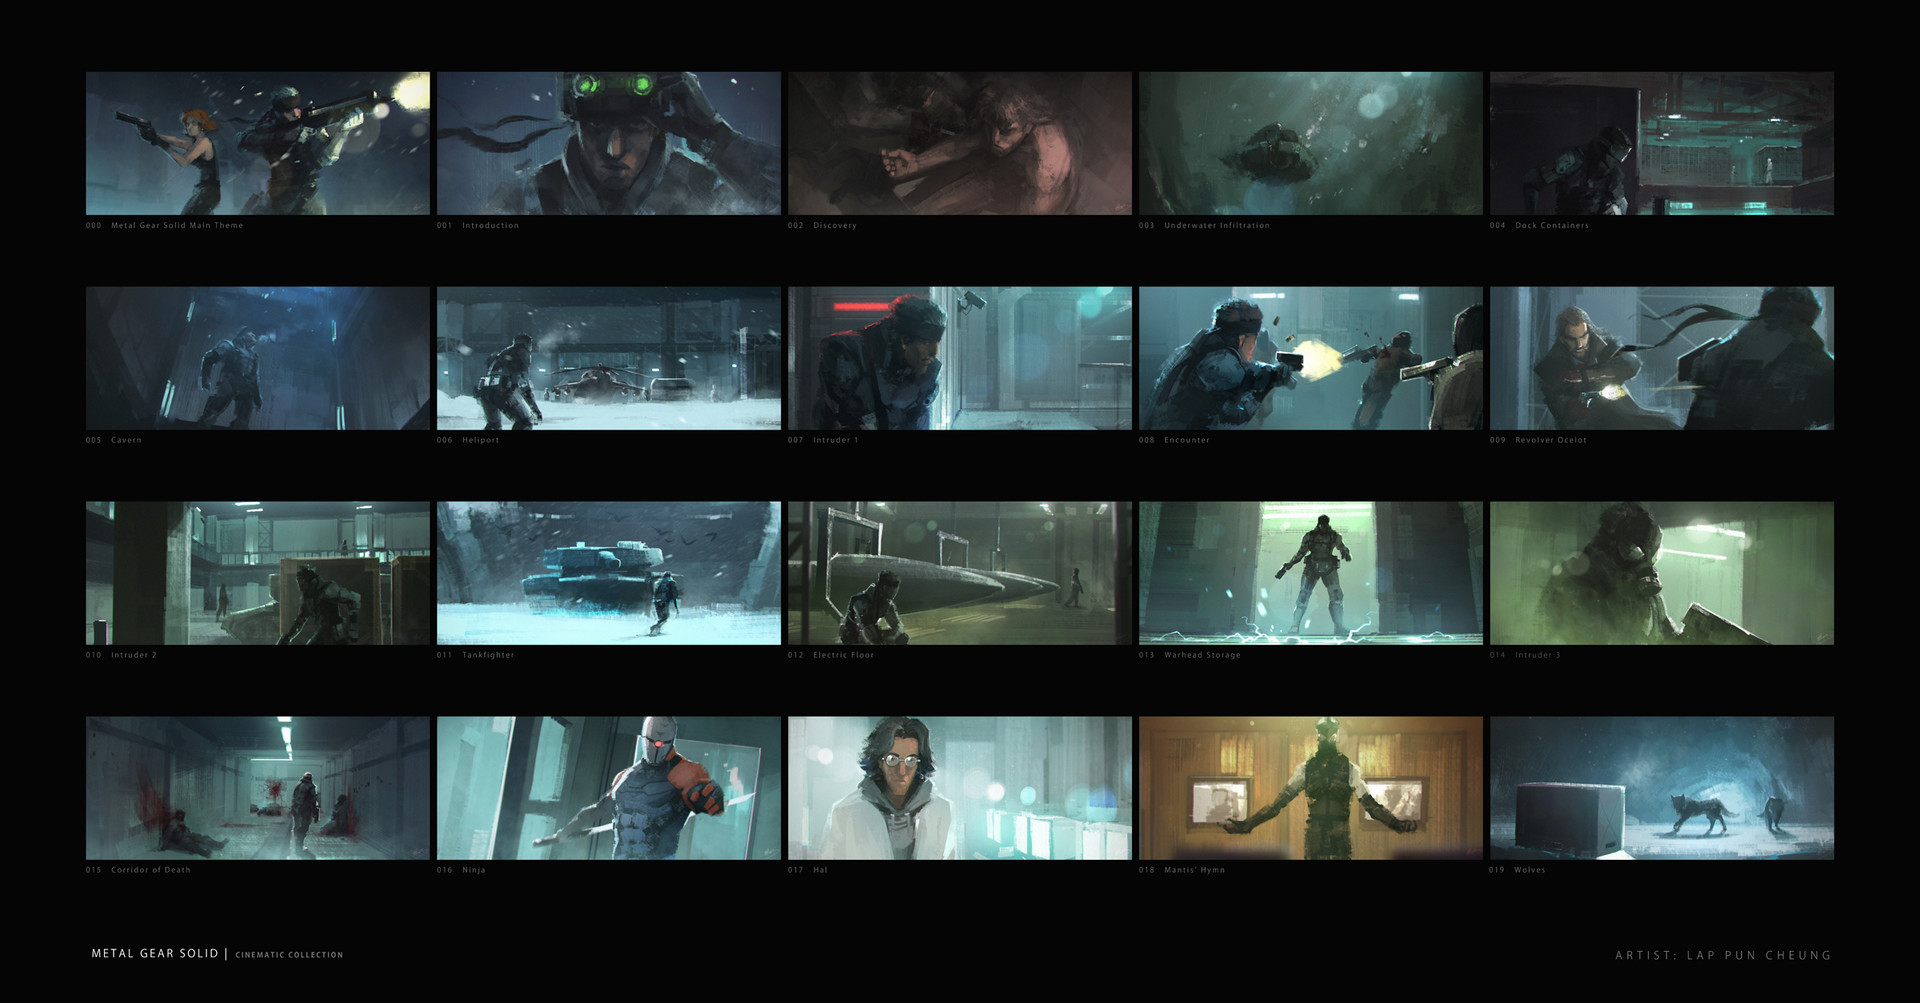 Lap pun cheung metal gear solid collection 001 online